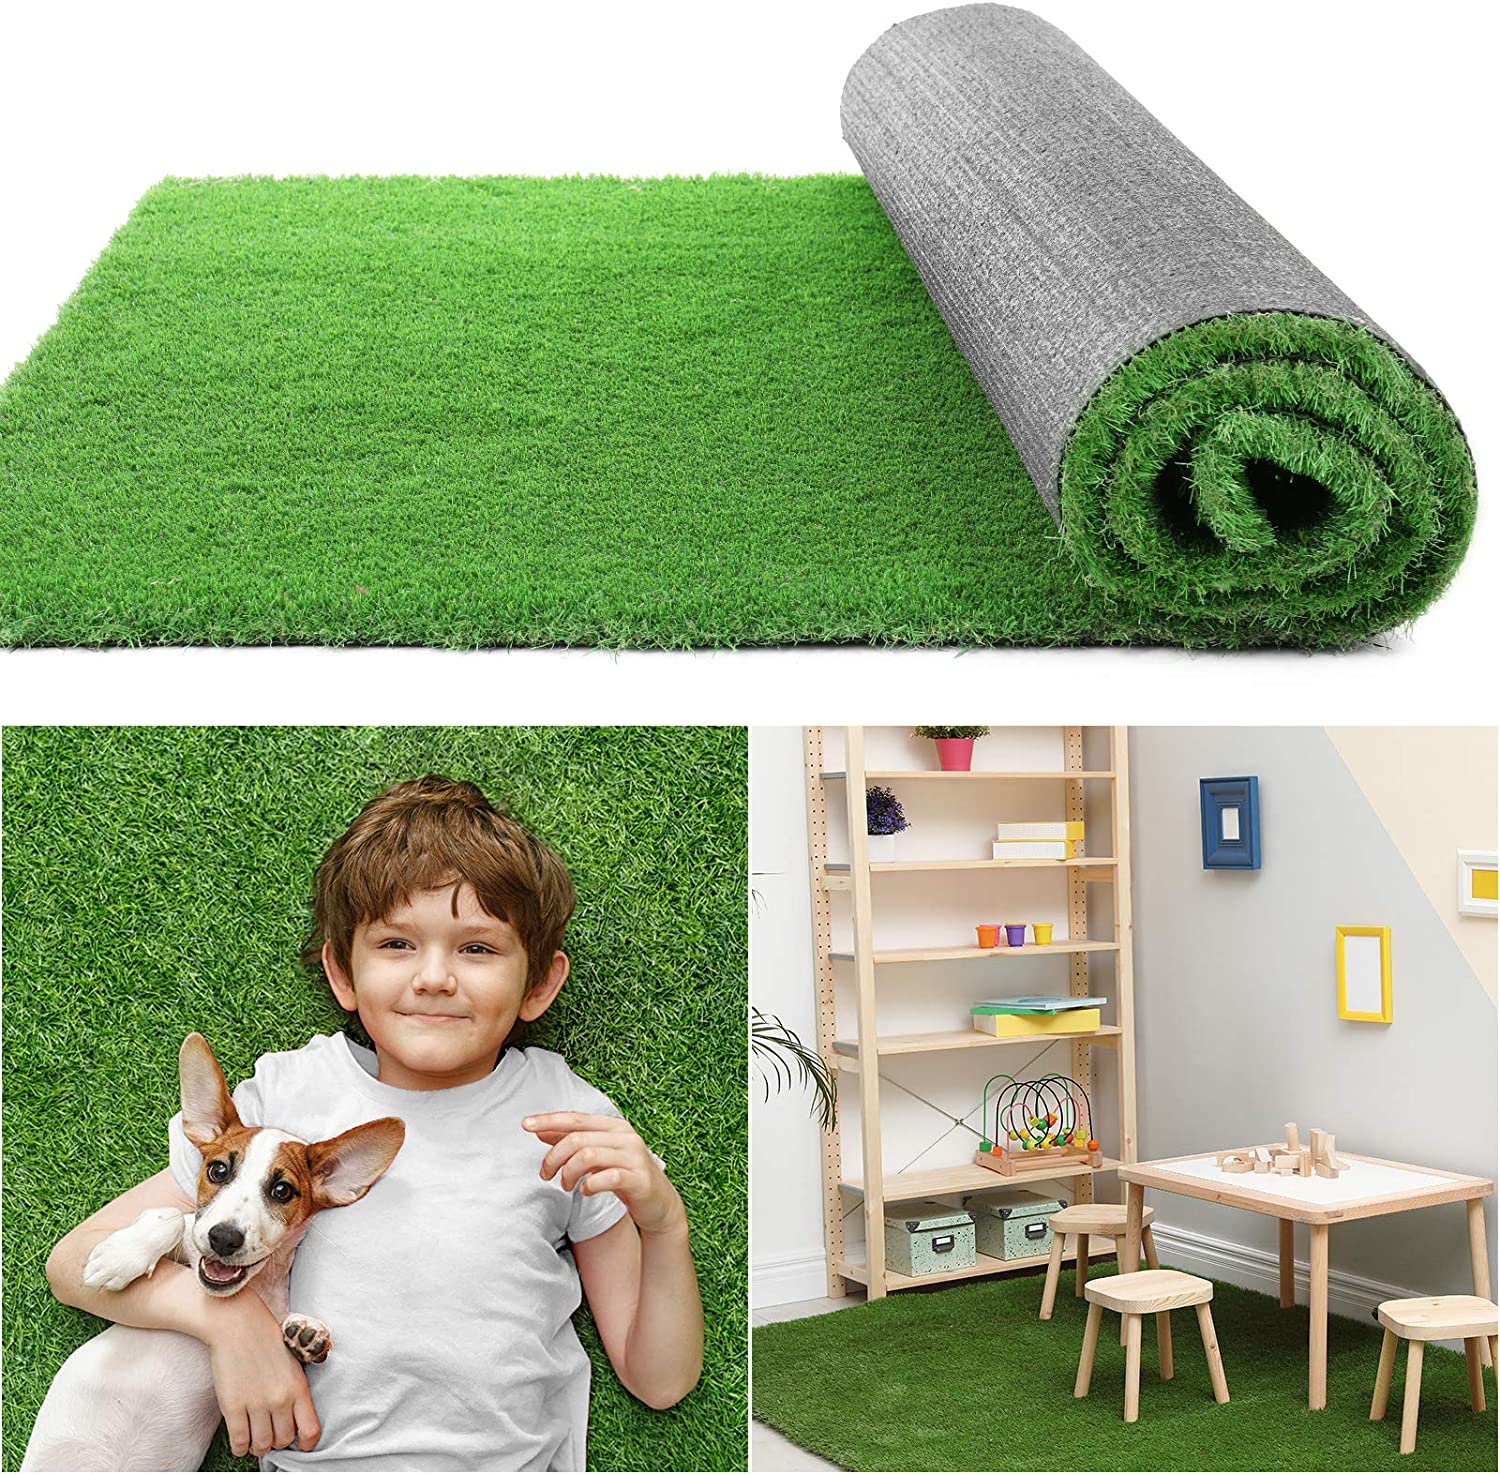 COCOBOO Artificial Grass Rug 世界の人気ブランド 大人気! for Dog 15 Square 3x5 FT Fake